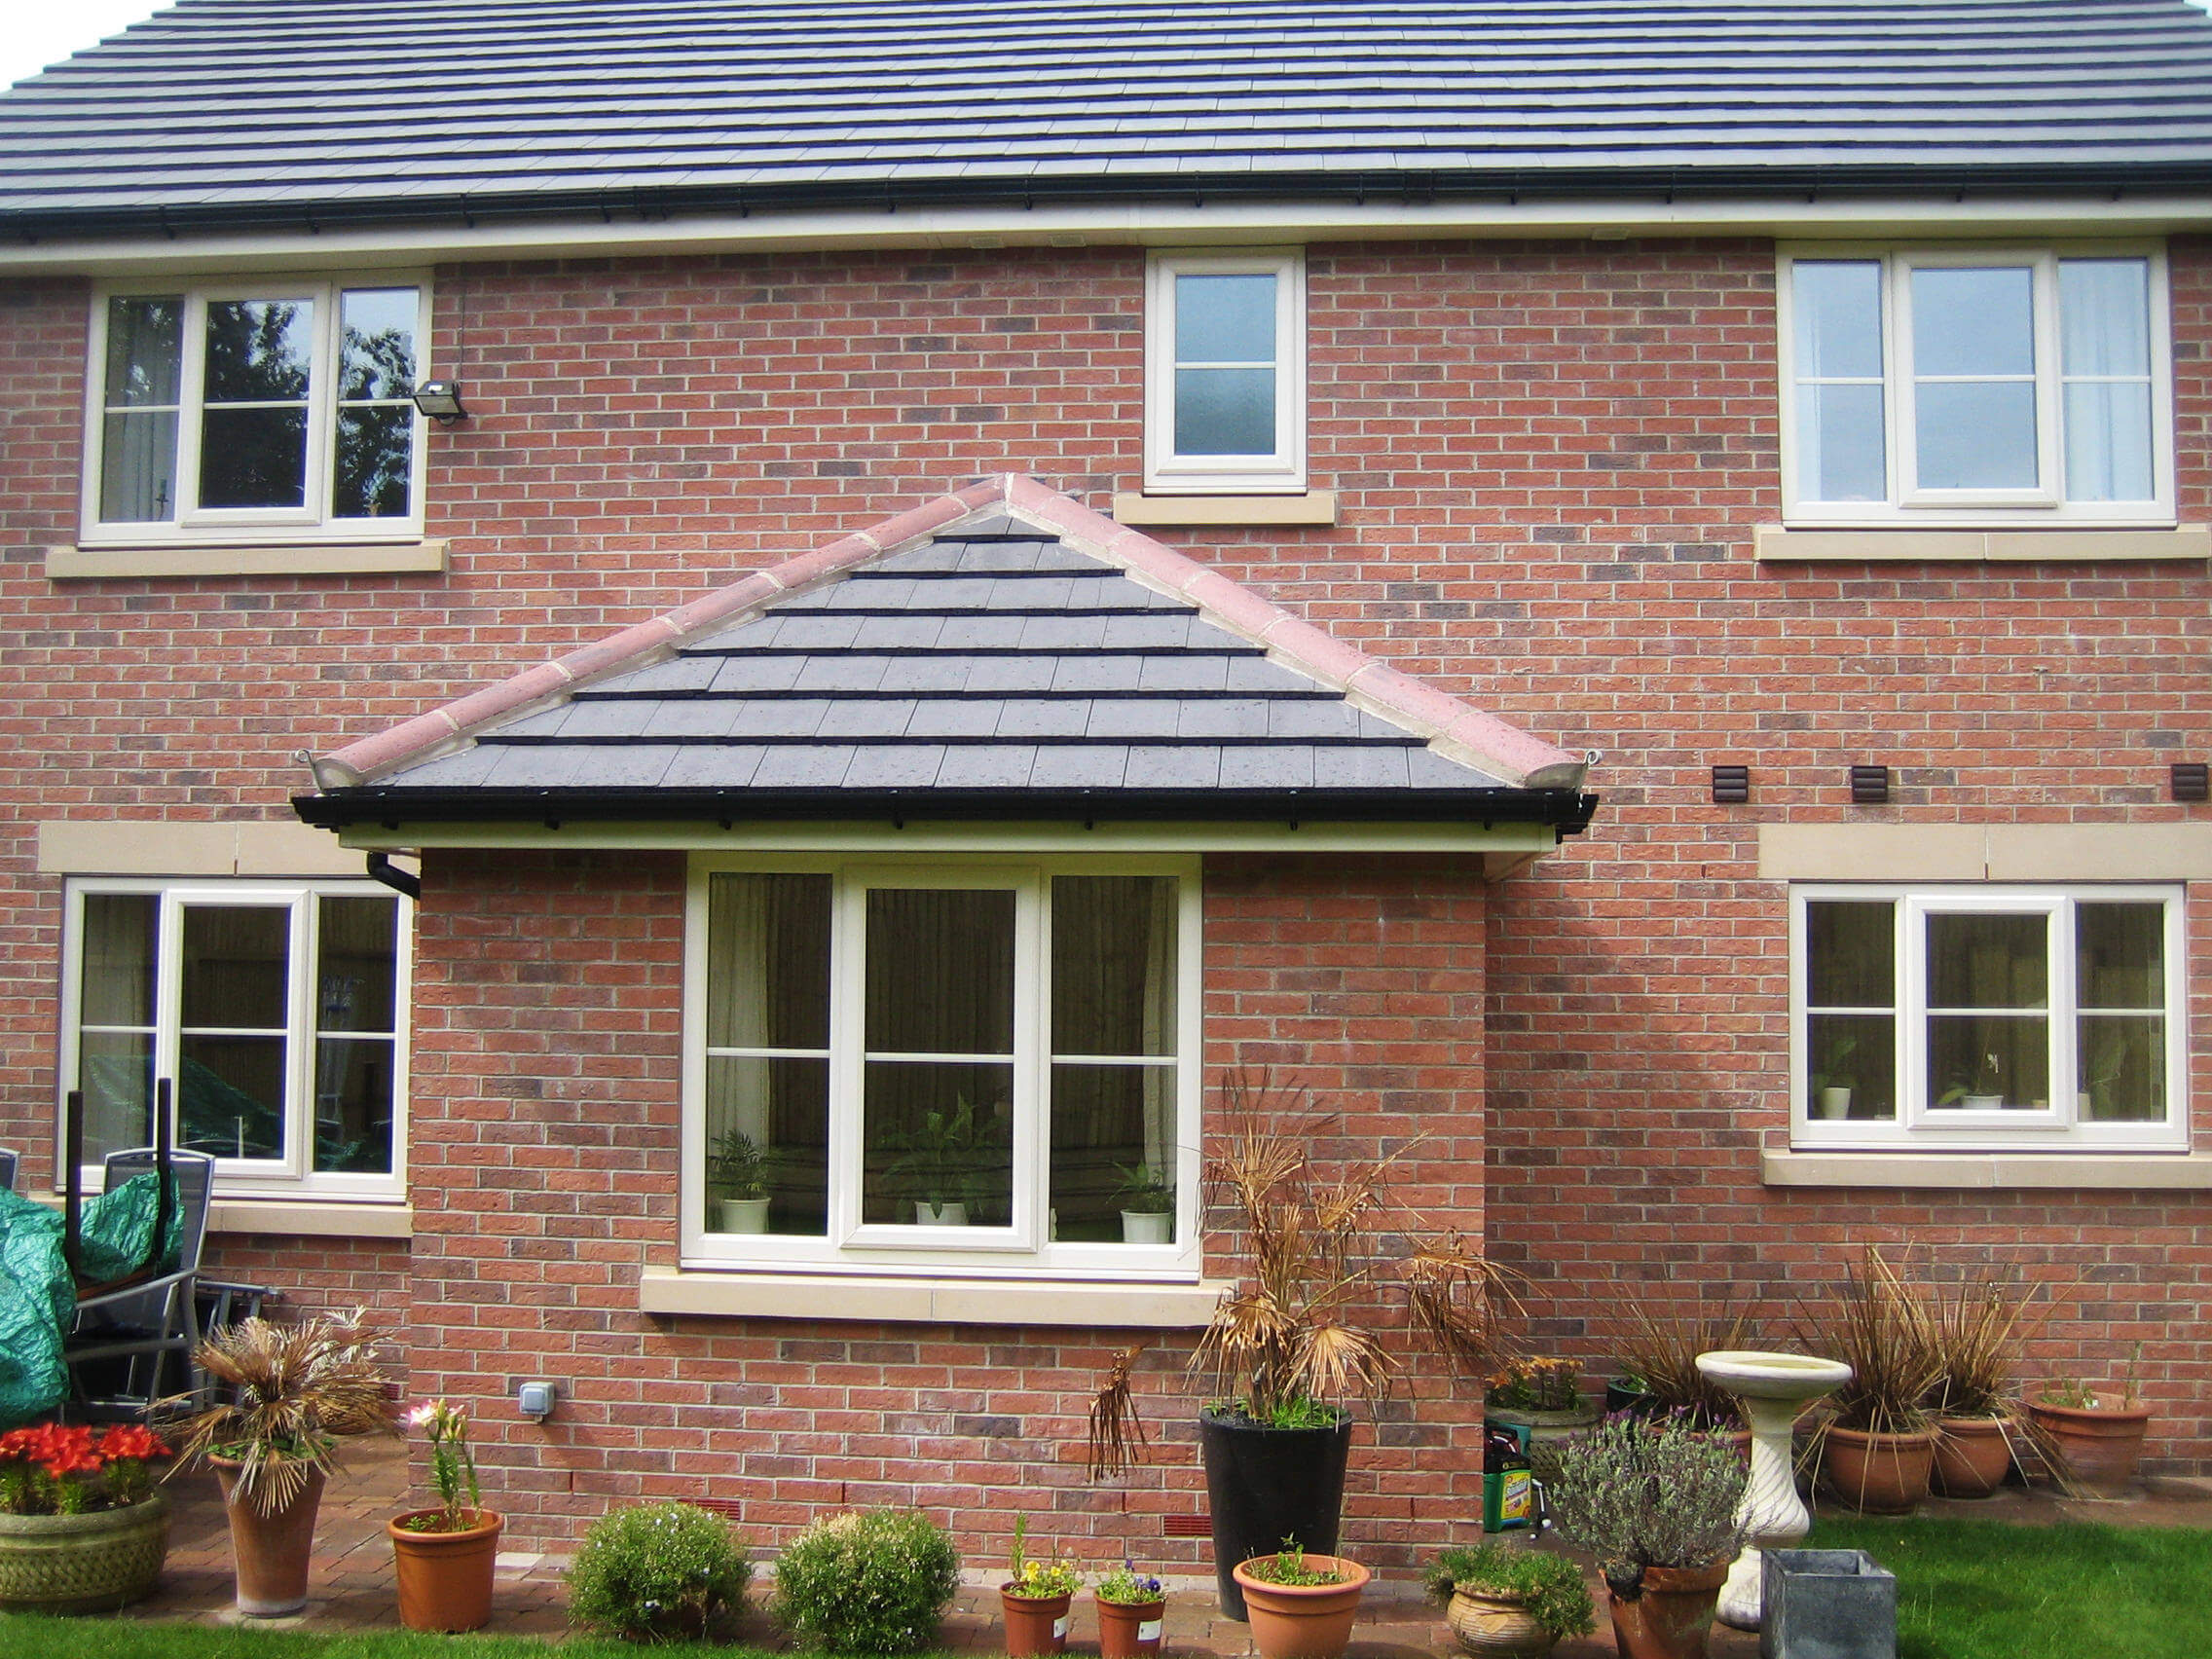 What Are Casement Windows?